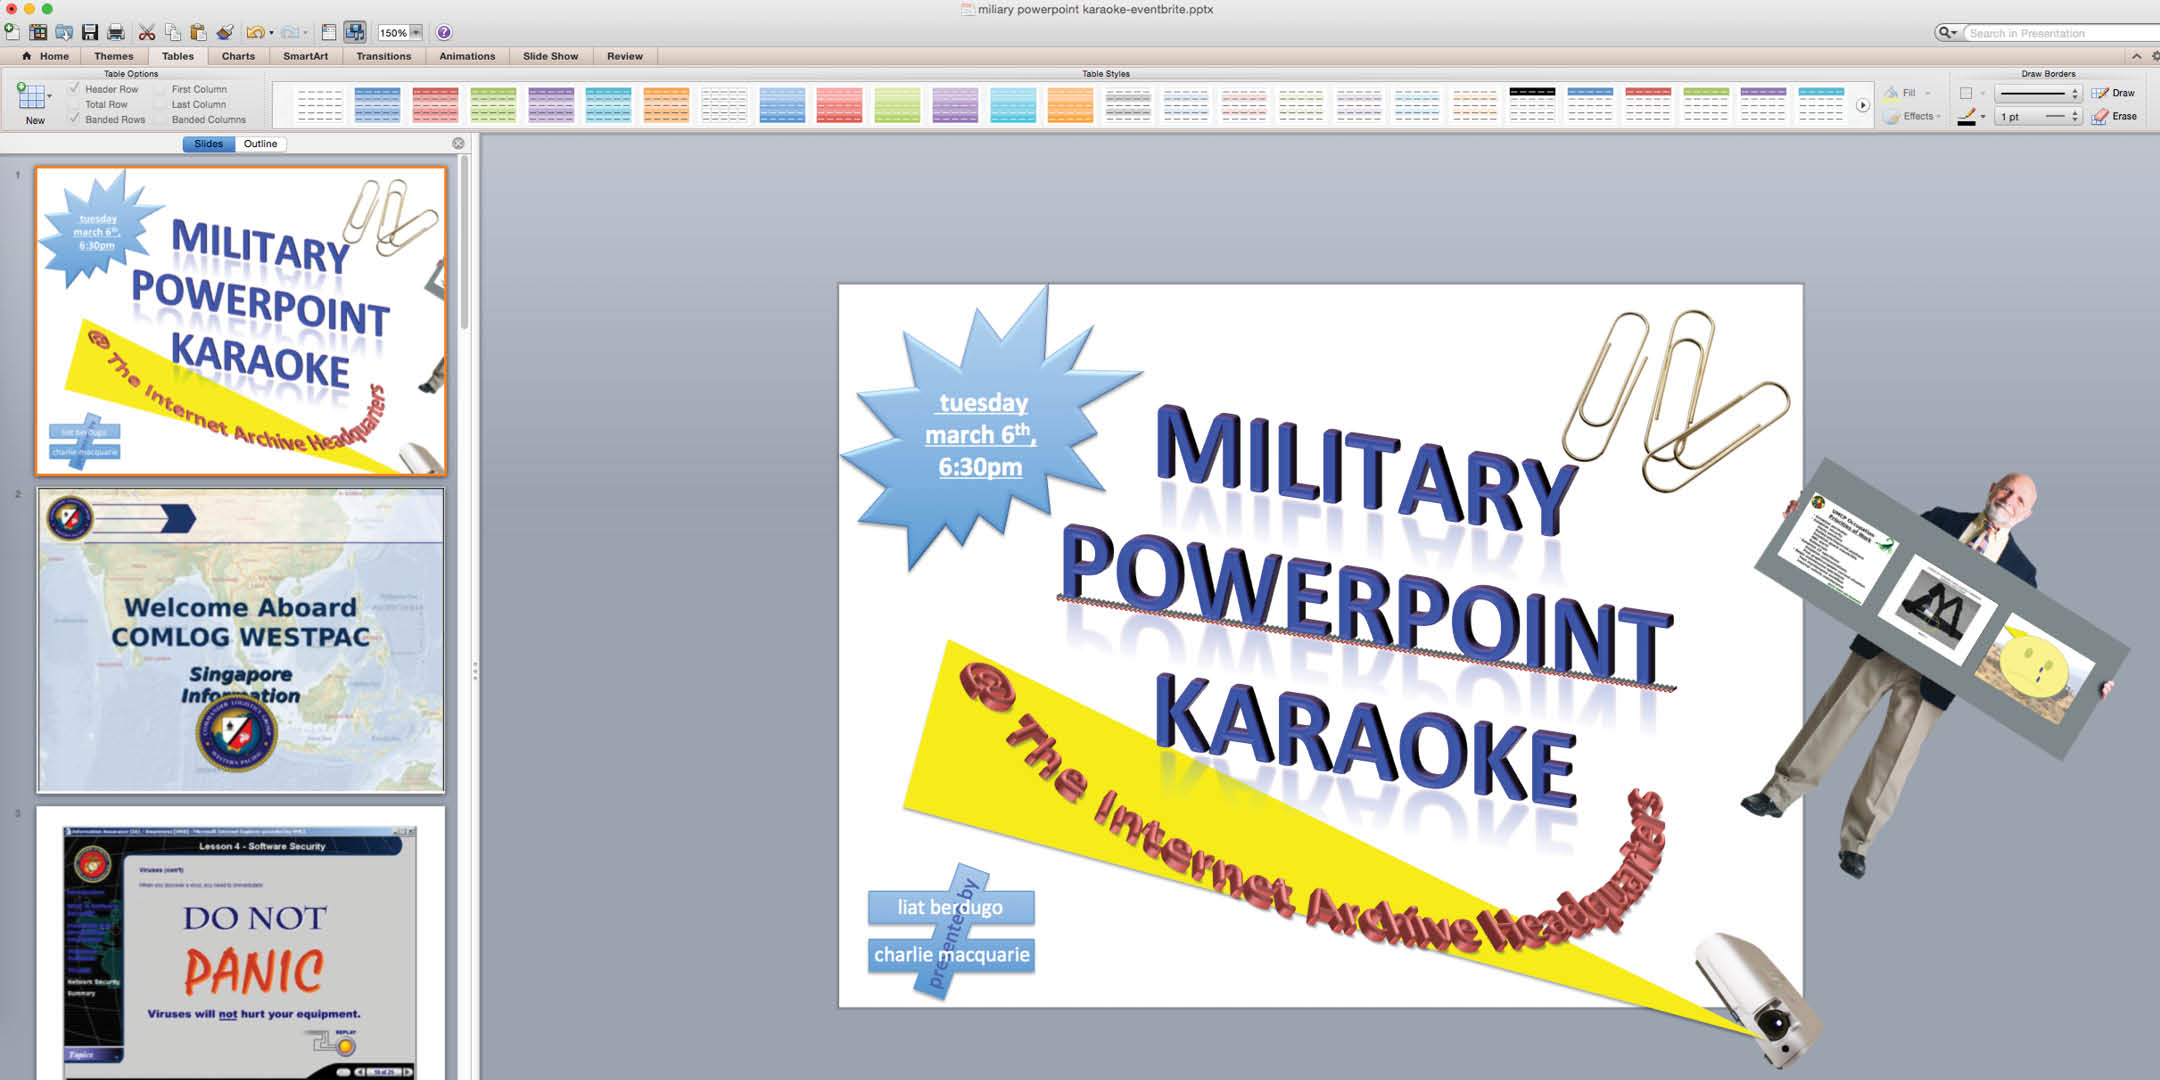 Military Industrial Powerpoint Complex Karaoke! — Tuesday